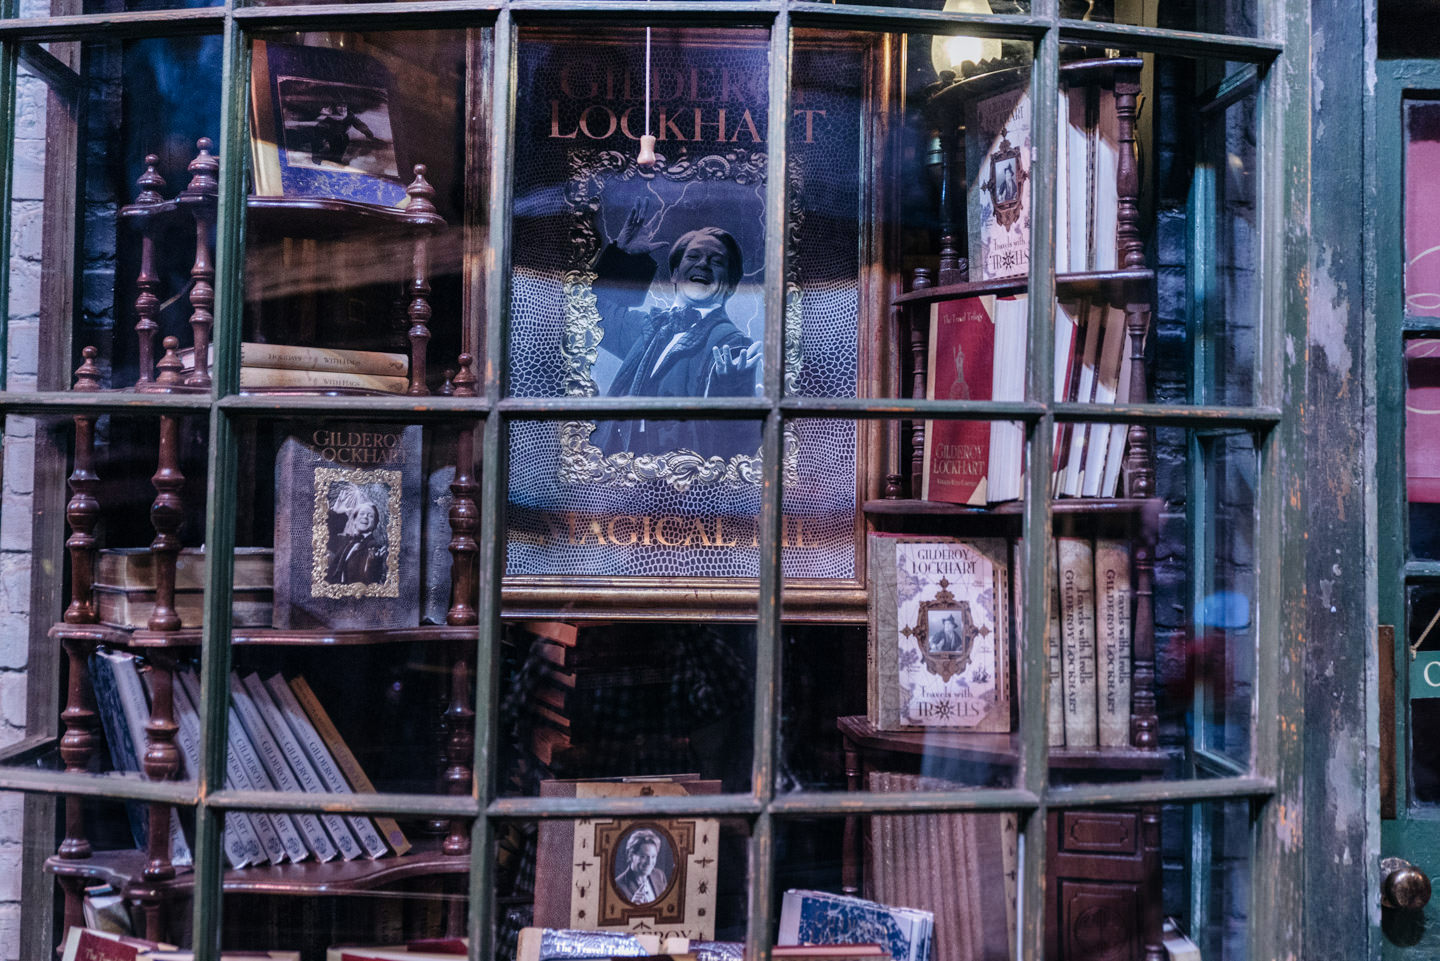 Blog-Mode-And-The-City-Lifestyle-Visite-Studios-Harry-Potter-Londres-27